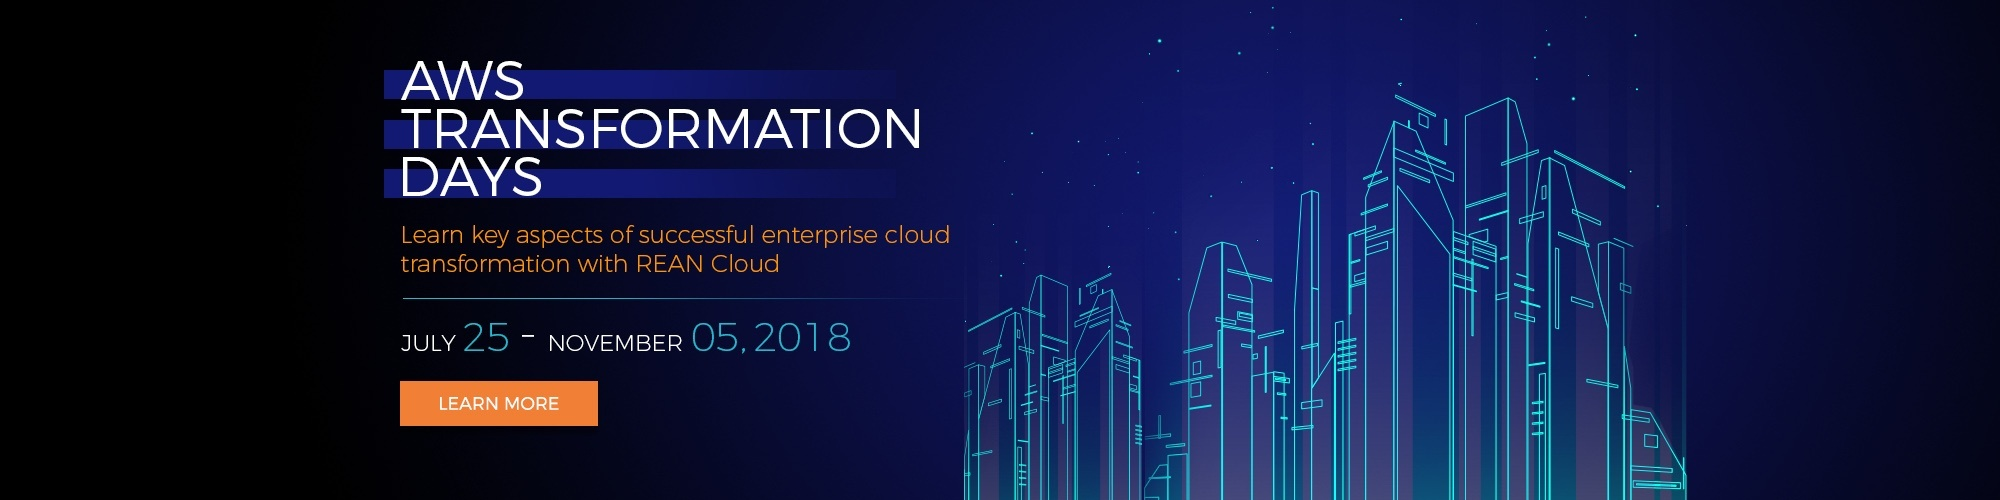 AWS Transformation Days